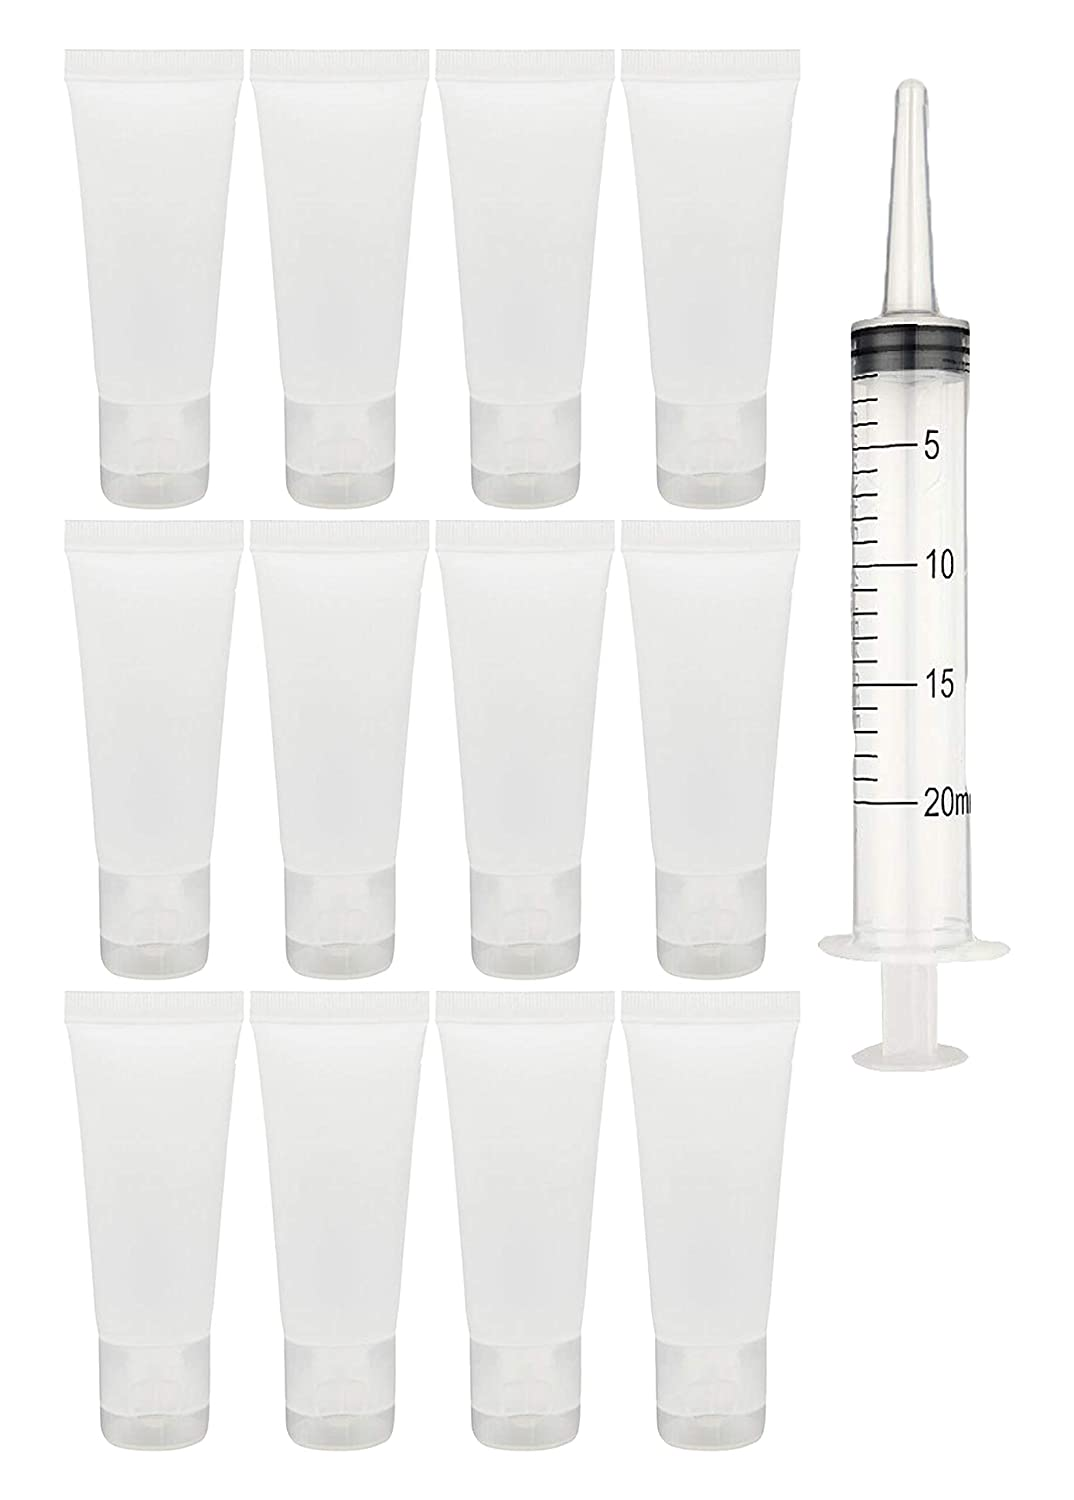 Jadsy Creations - (12pcs per pack) 100ml Empty Cosmetic Tubes with free Syringe Soft Tubes Container Bottle Vial Jar with Flip Cap Storage for Shower Gel Body Lotion Cleanser Shampoo